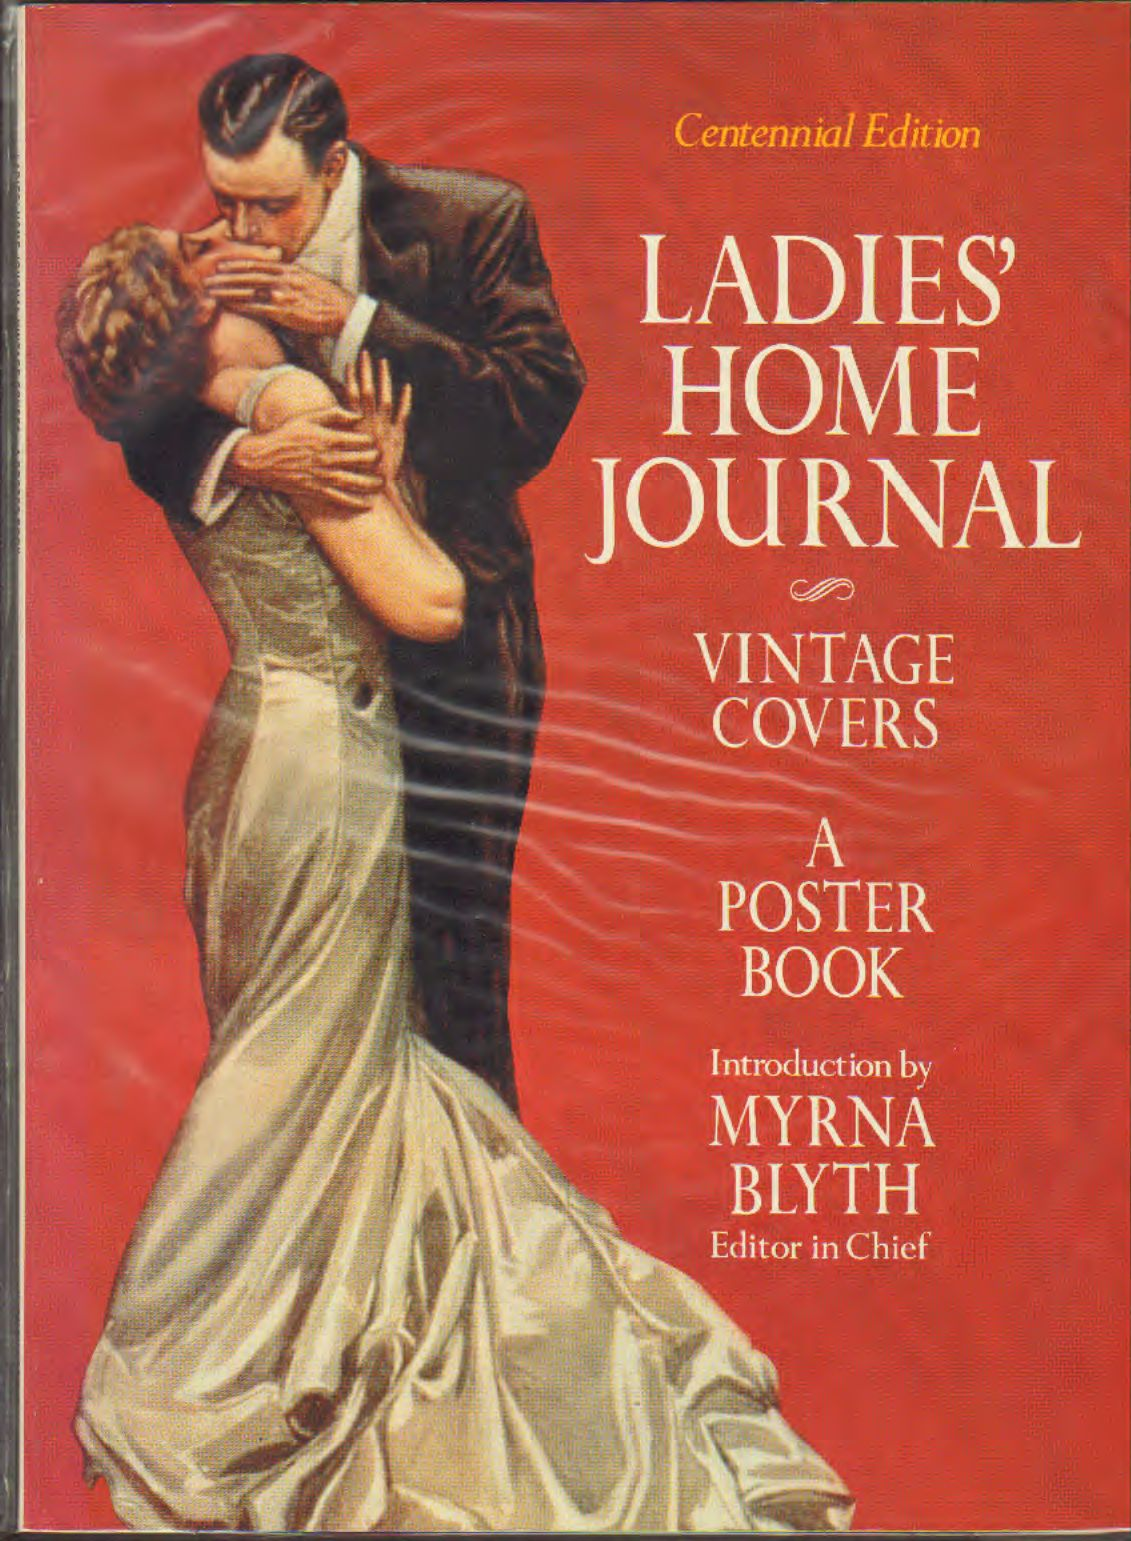 AA.VV - Ladie's Home Journal Vintage Cover